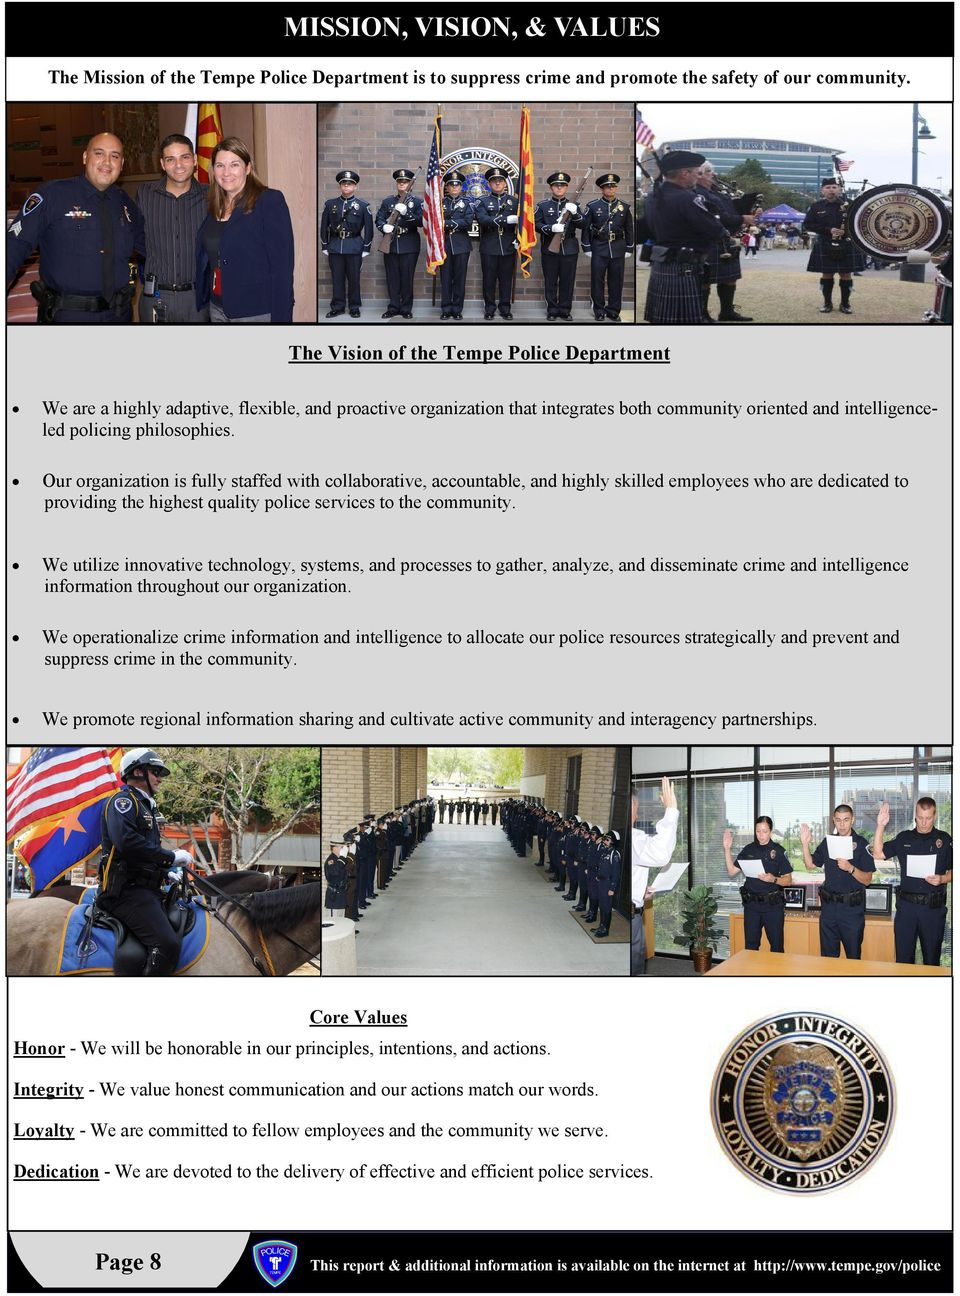 Our organization is fully staffed with collaborative, accountable, and highly skilled employees who are dedicated to providing the highest quality police services to the community.